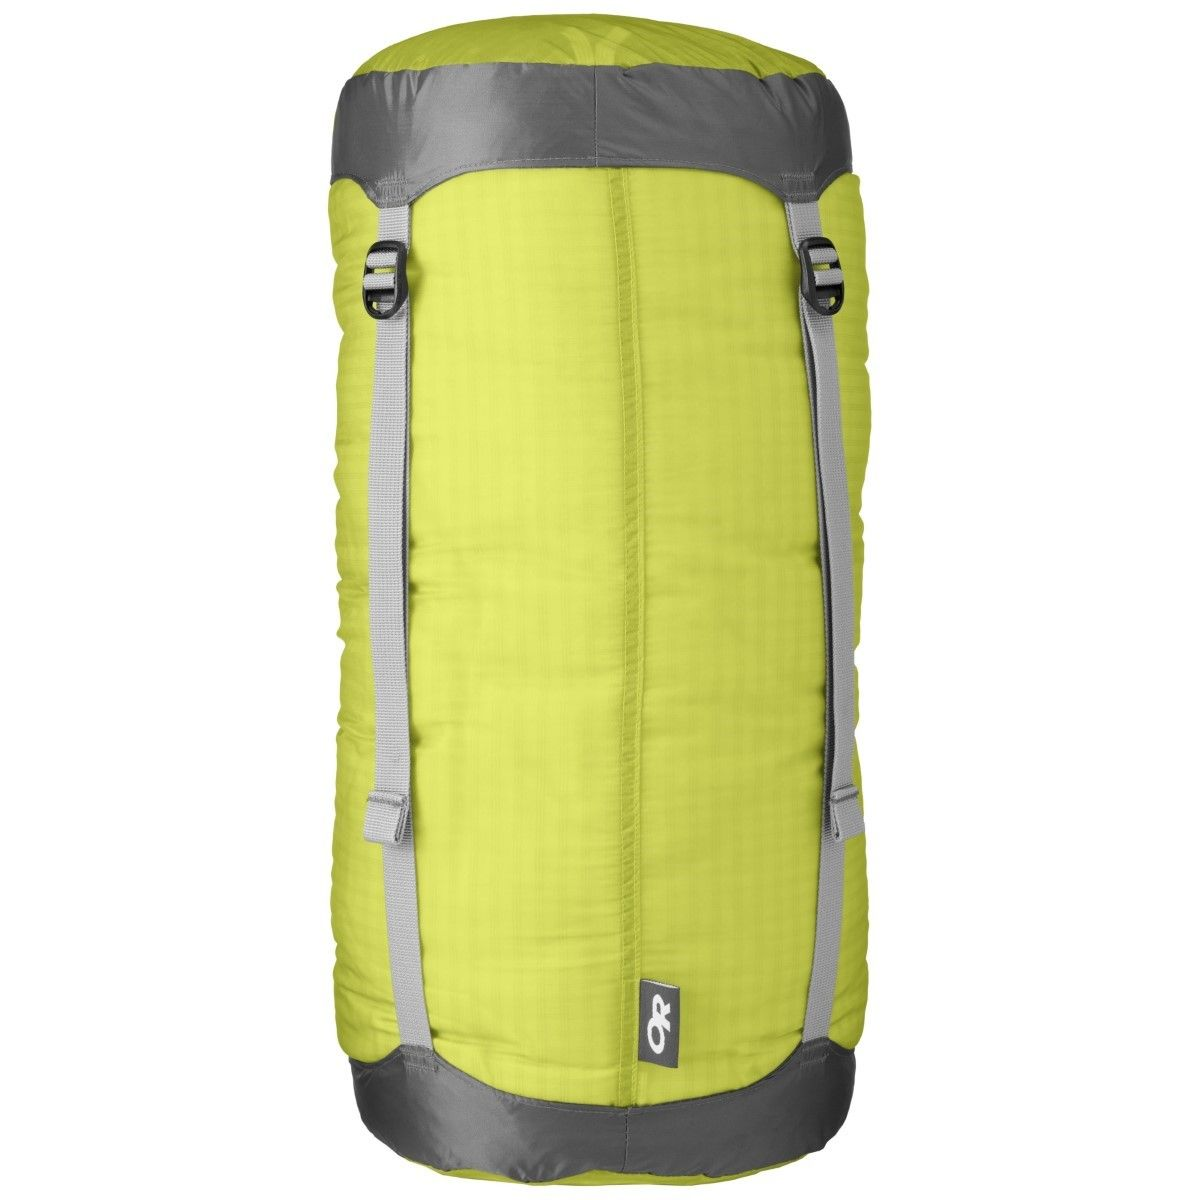 Outdoor Research Ultralight 15L Compression Sack